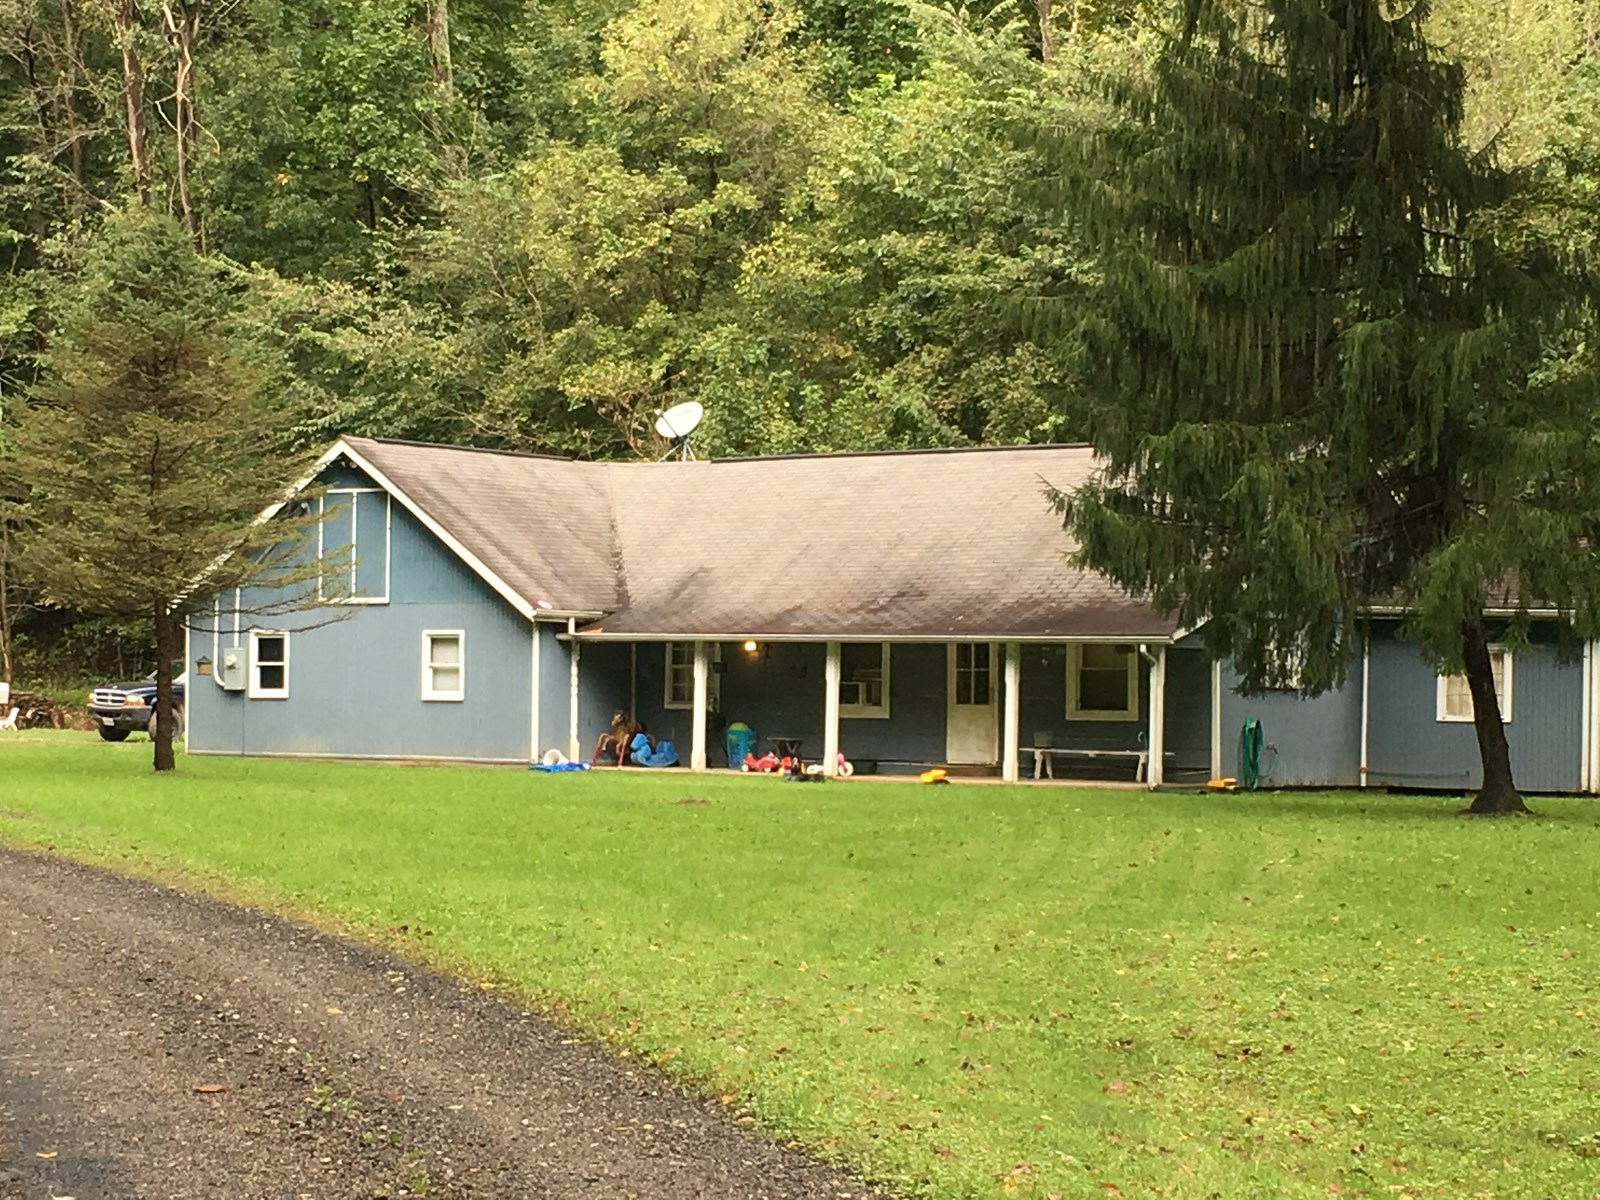 Woodsfield Ohio Real Estate - Auctions, Country Homes, Farms